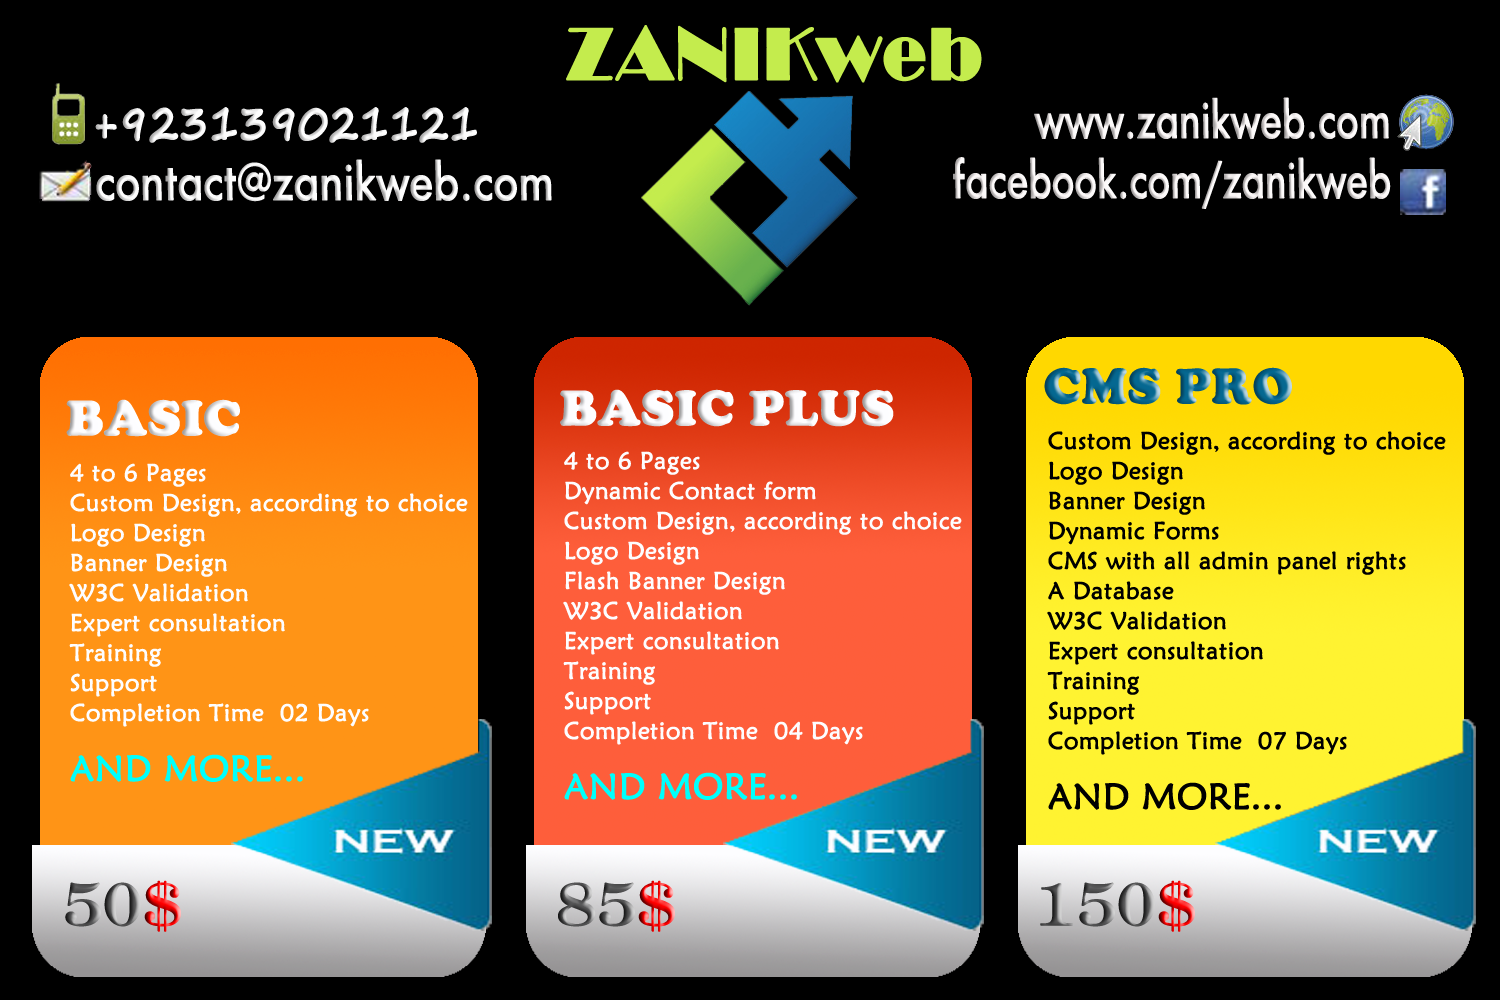 #ZanikWeb provides complete website and art solutions for businesses.  Our packages includes; professional Custom Design, Long term and on-demand Maintenance and updates, domain name, emails, ecommerce and 24/7 support.  Additionally ZanikWeb provide an array of Quality services: Corporate Design services, web analytics,Testng, Search Engine Optimization (SEO), Social Media Optimization (SMO), rich content and mobile website design.